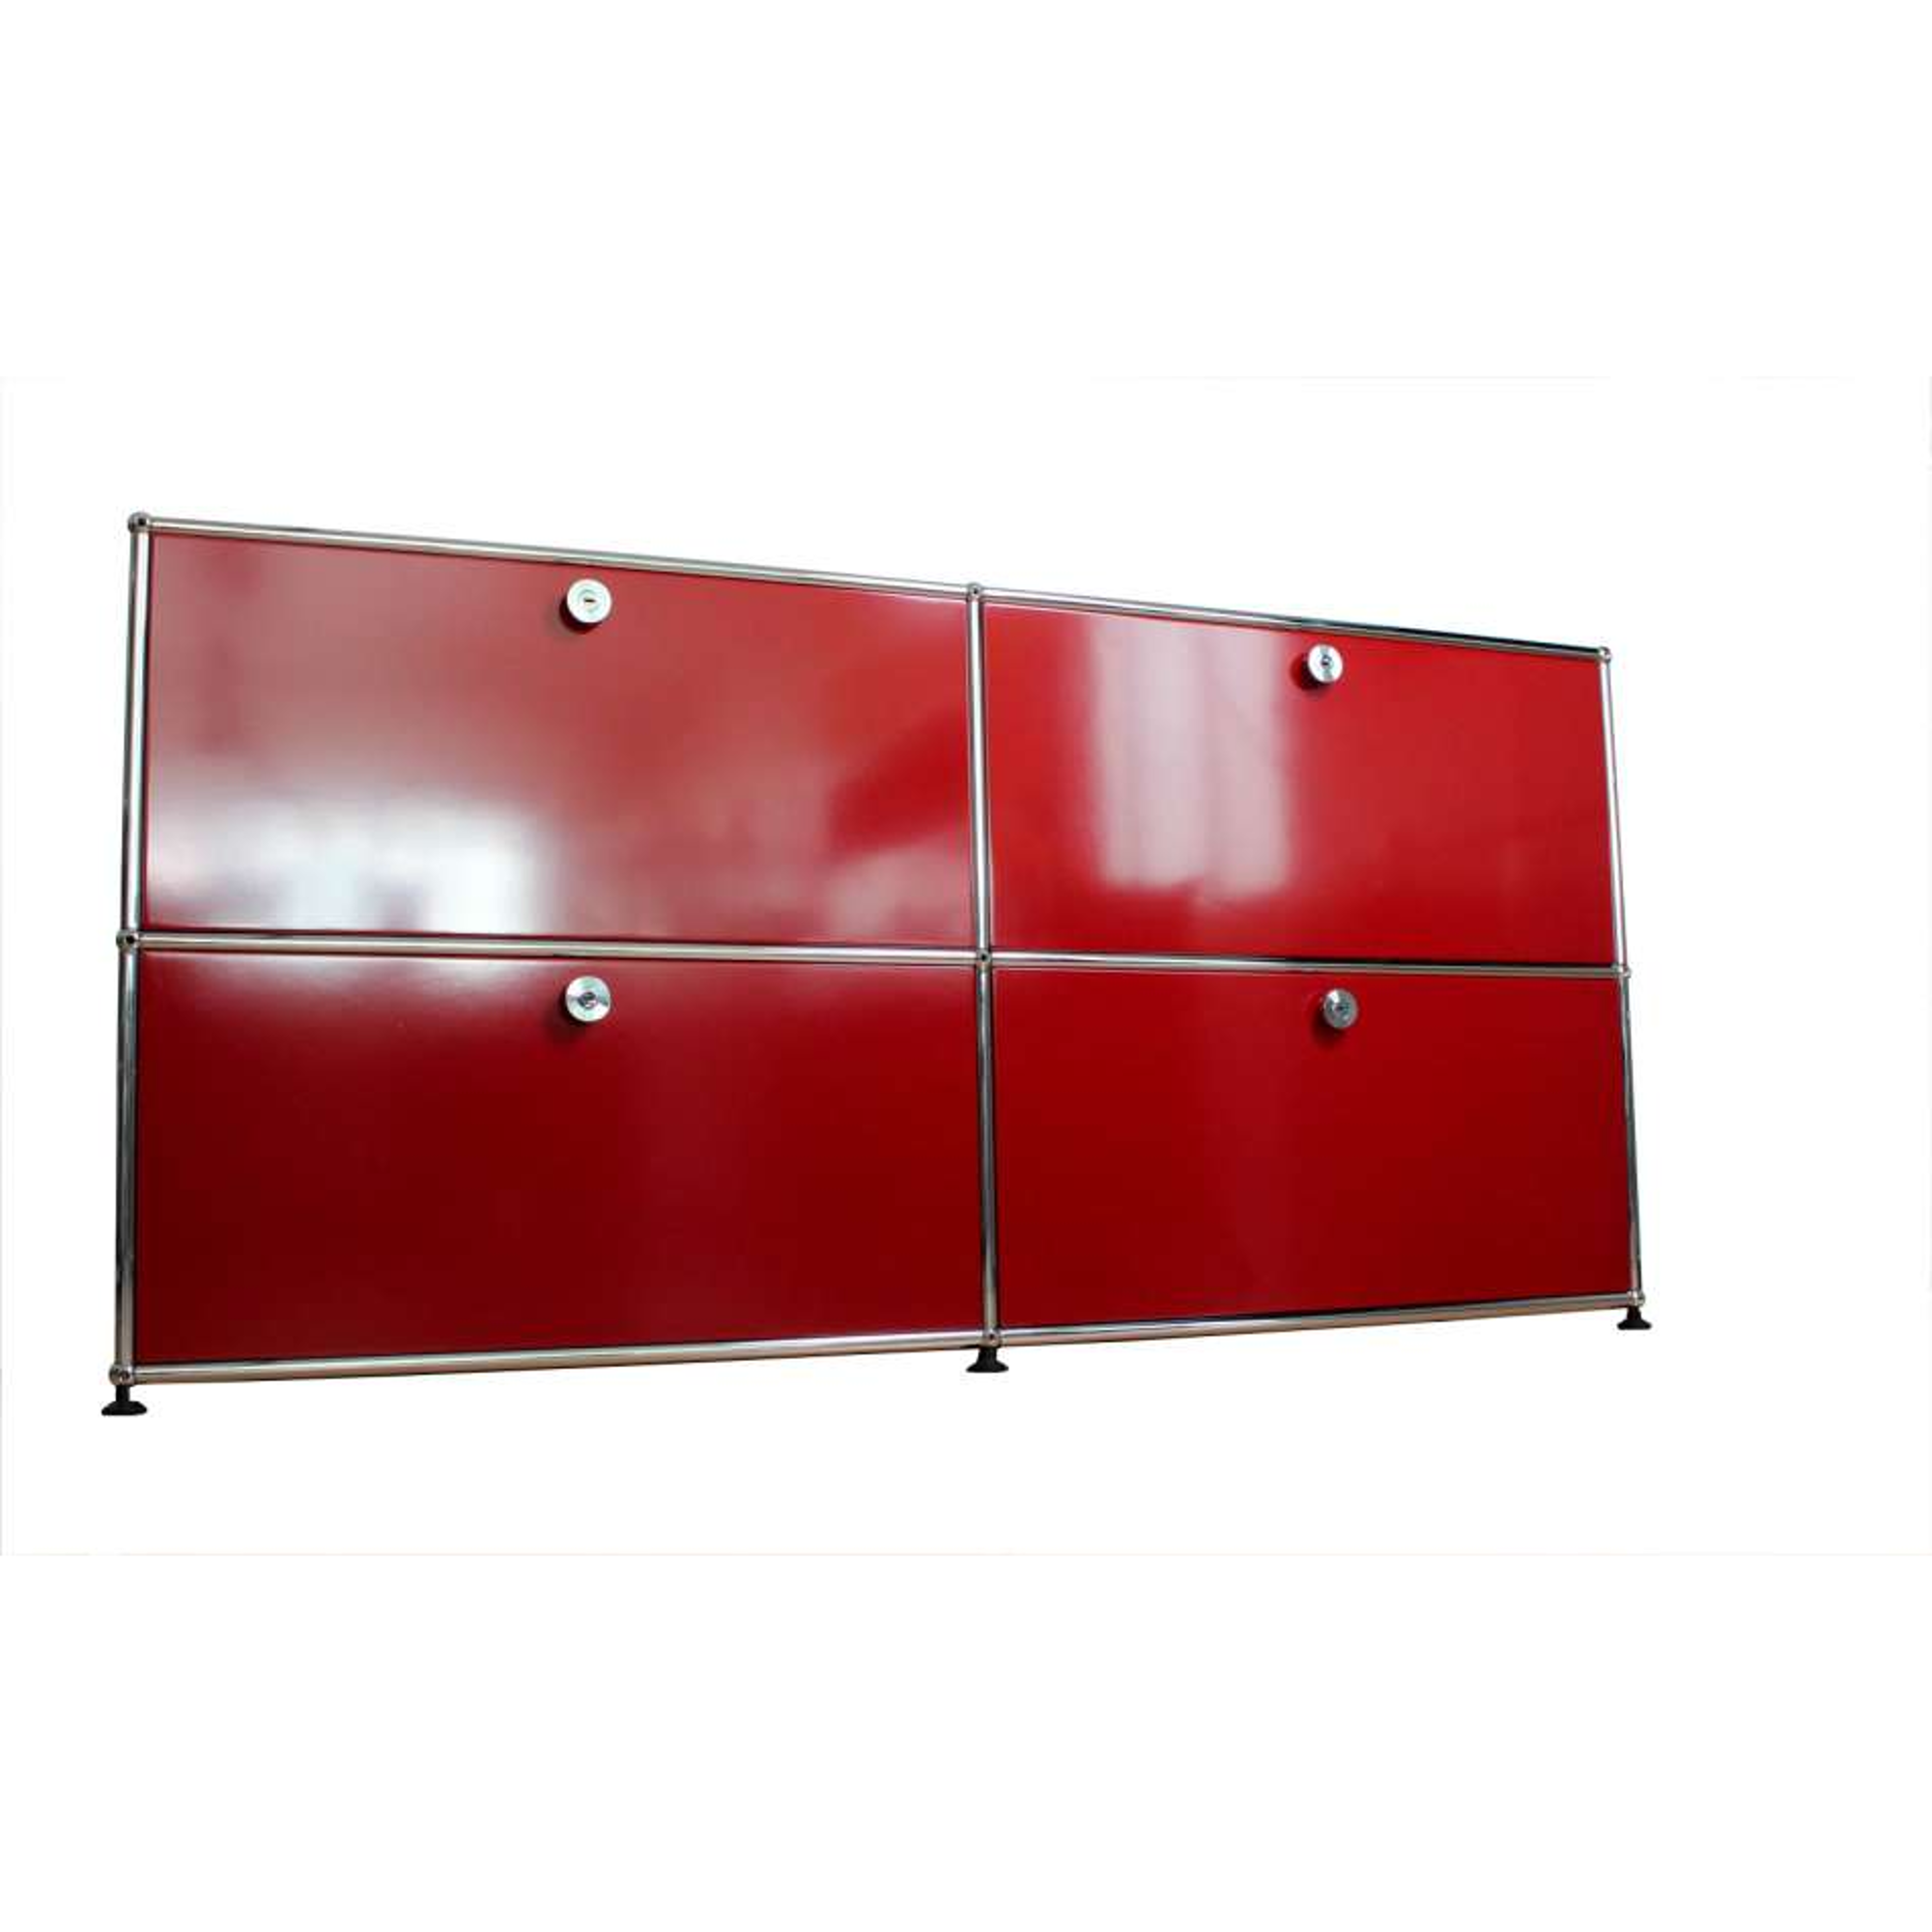 usm haller sideboard 4 klappen rot eur picclick de. Black Bedroom Furniture Sets. Home Design Ideas